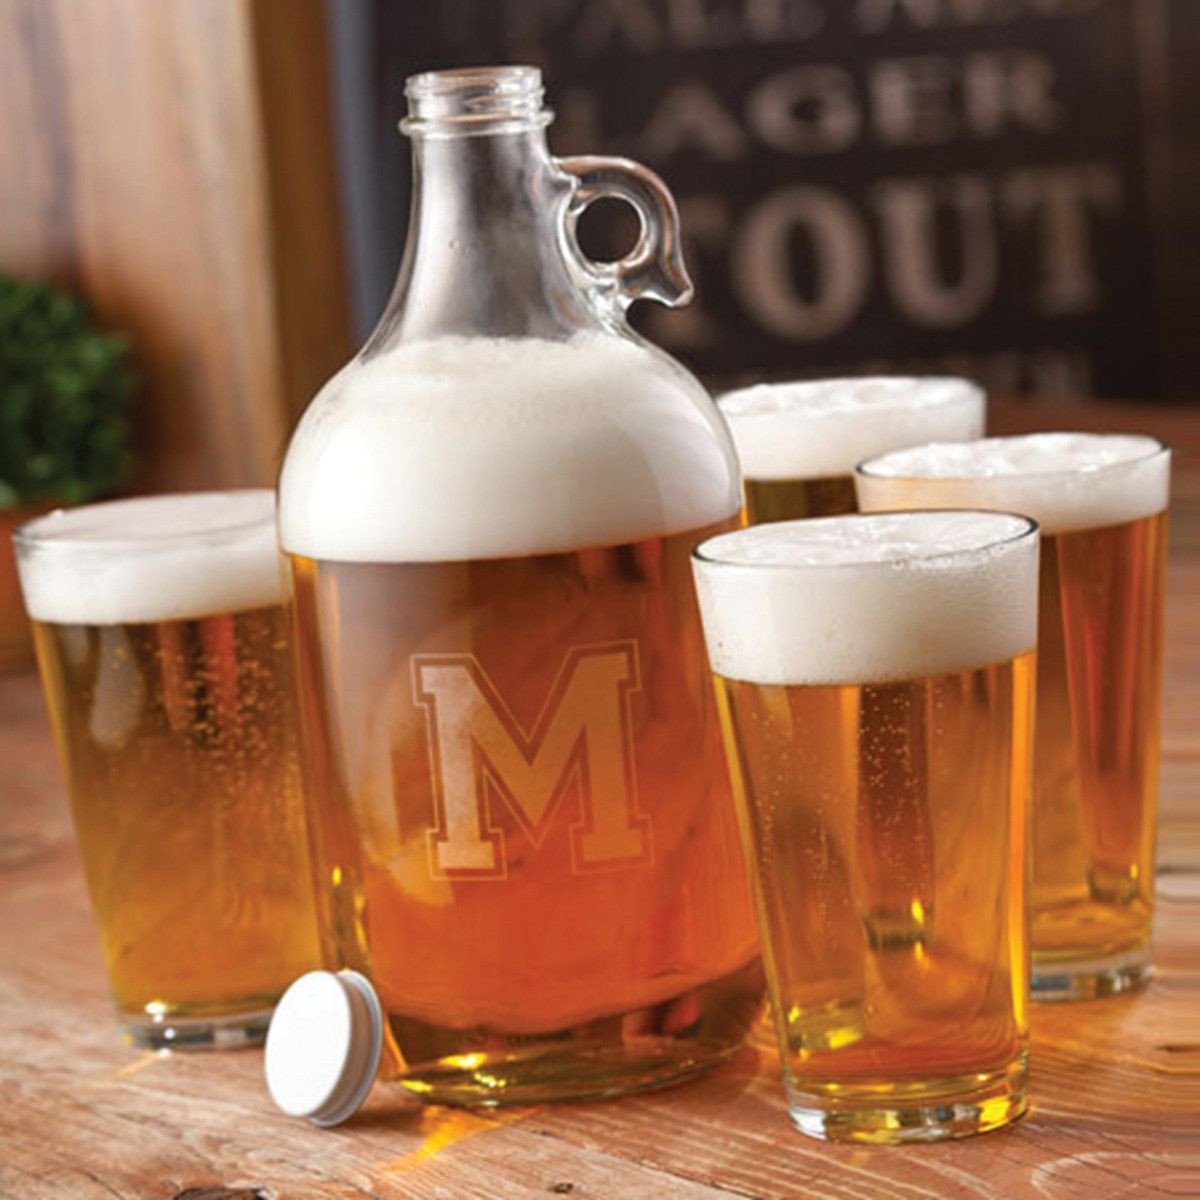 Personalized Glass Beer Growler Set with 4 Pint Glasses